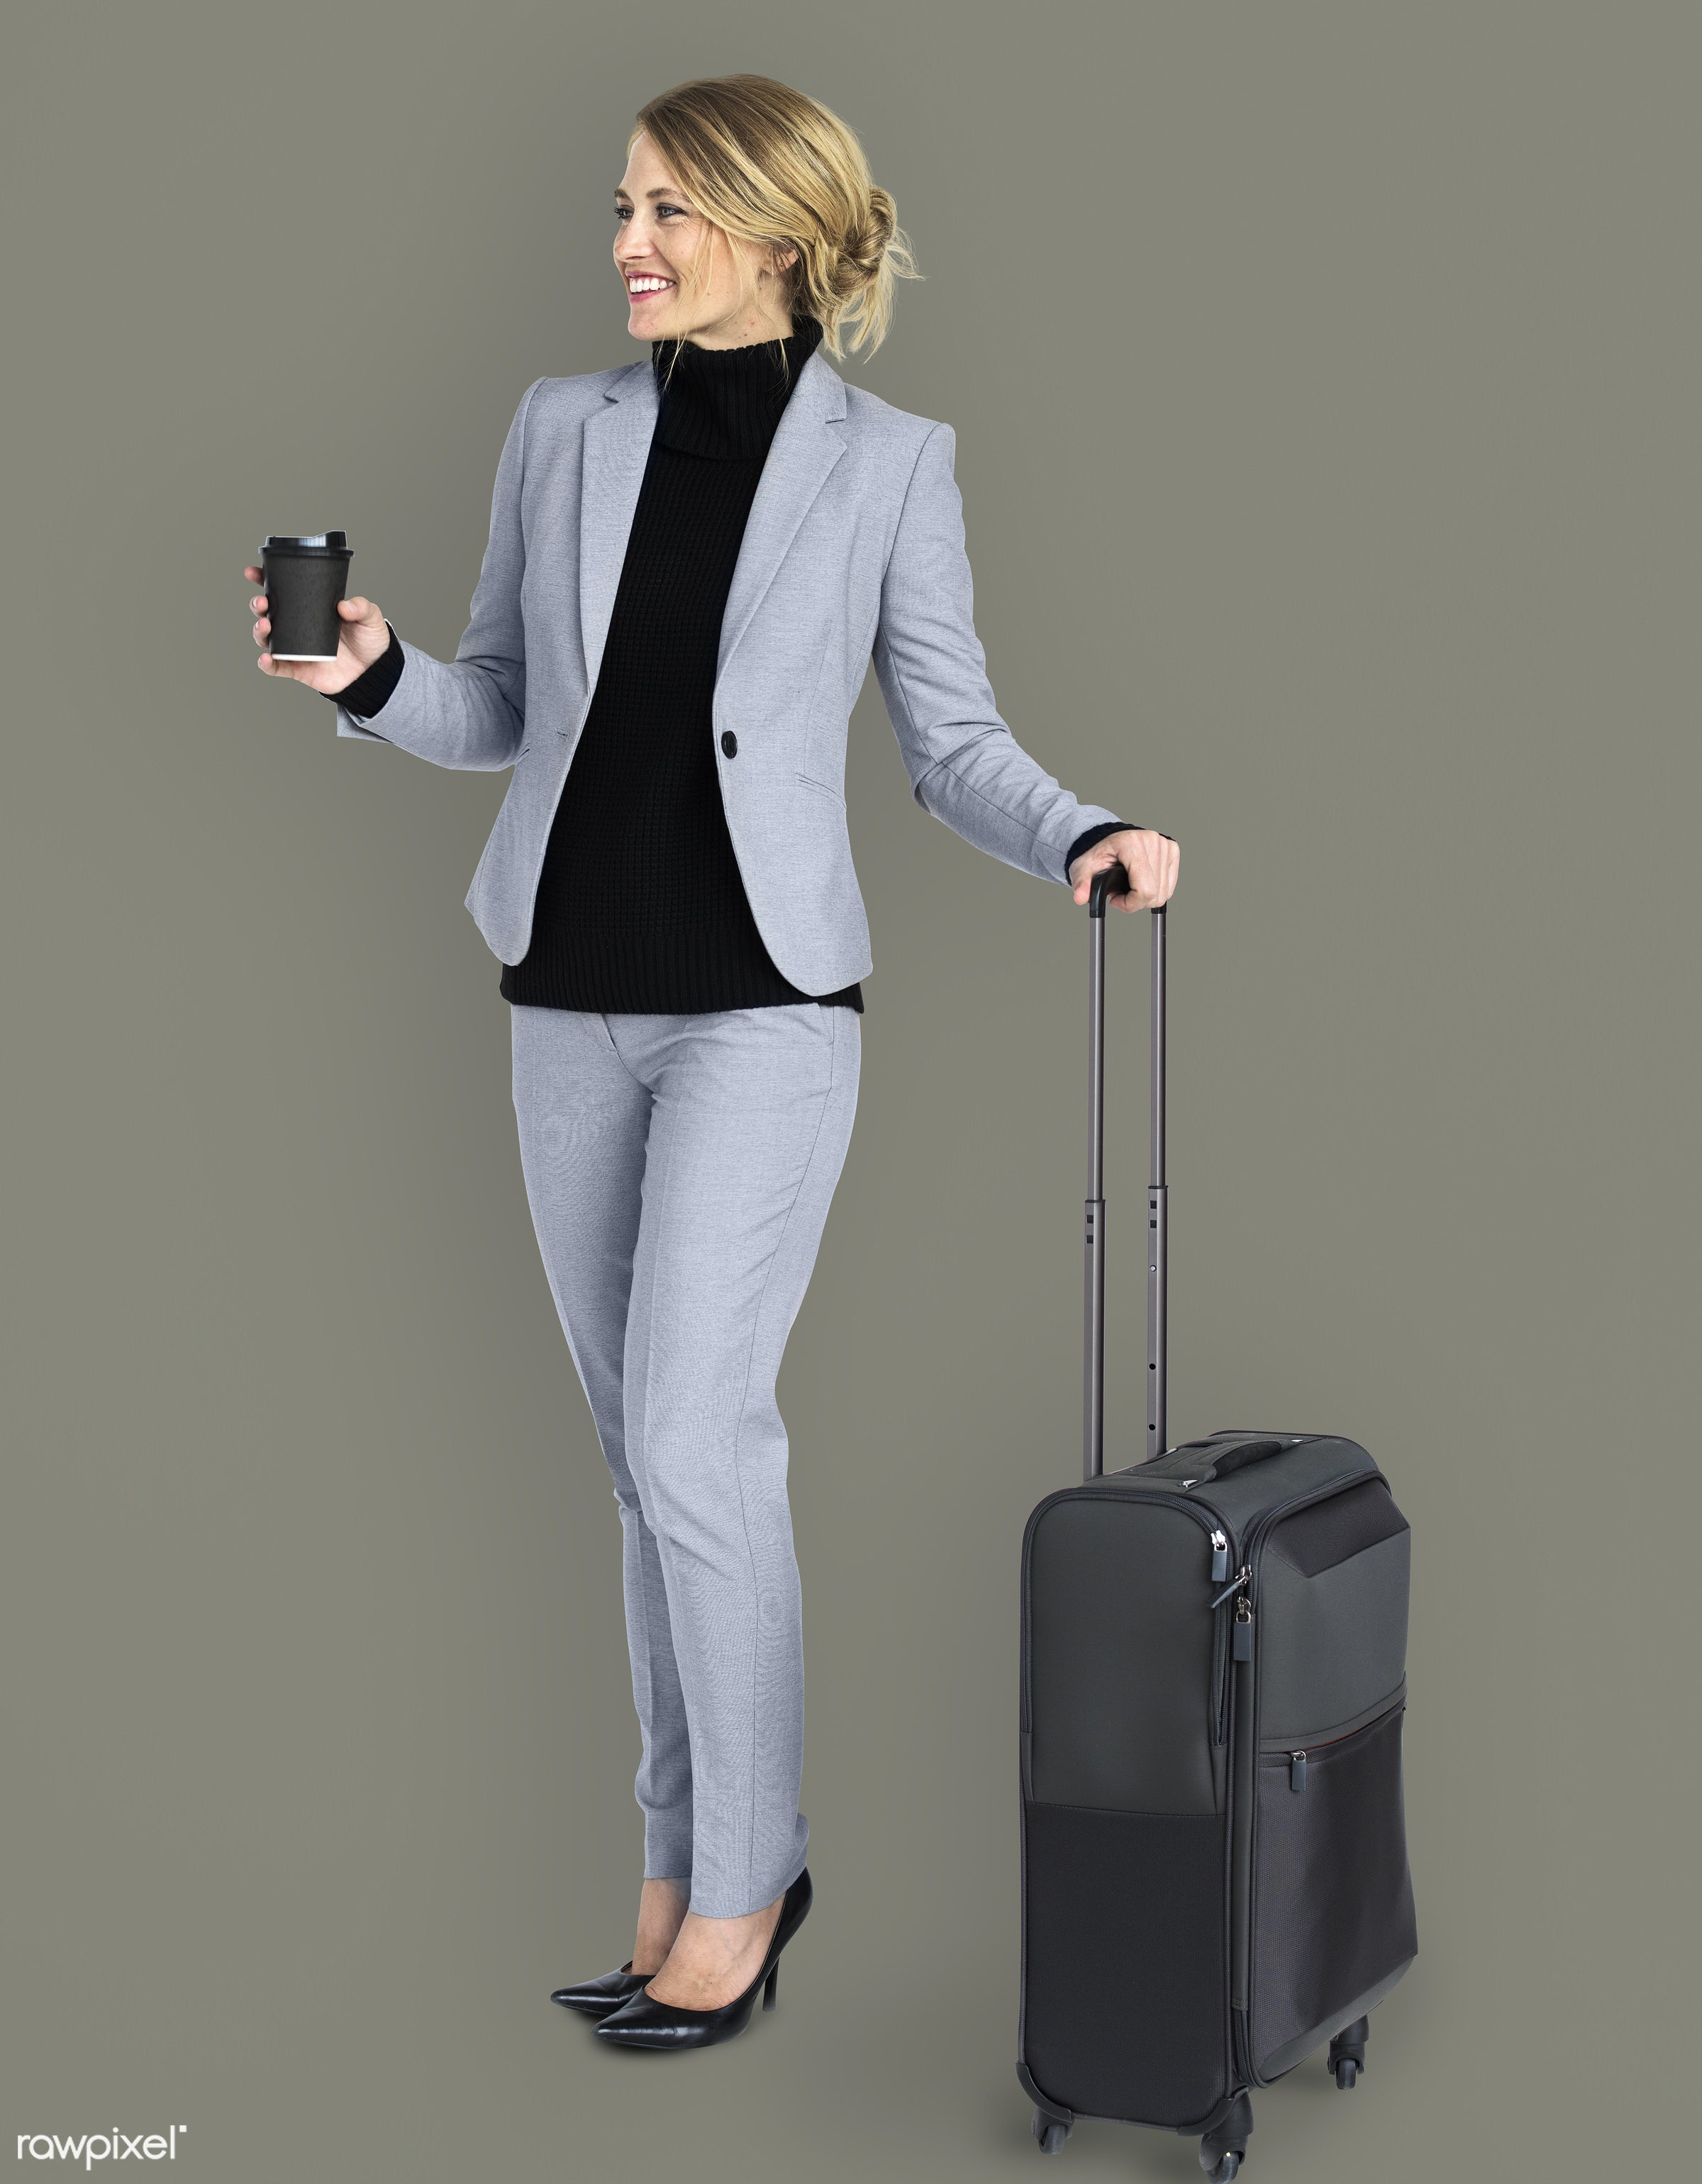 business trip, expression, studio, person, business wear, luggage, travel, business dressing, people, business, caucasian,...